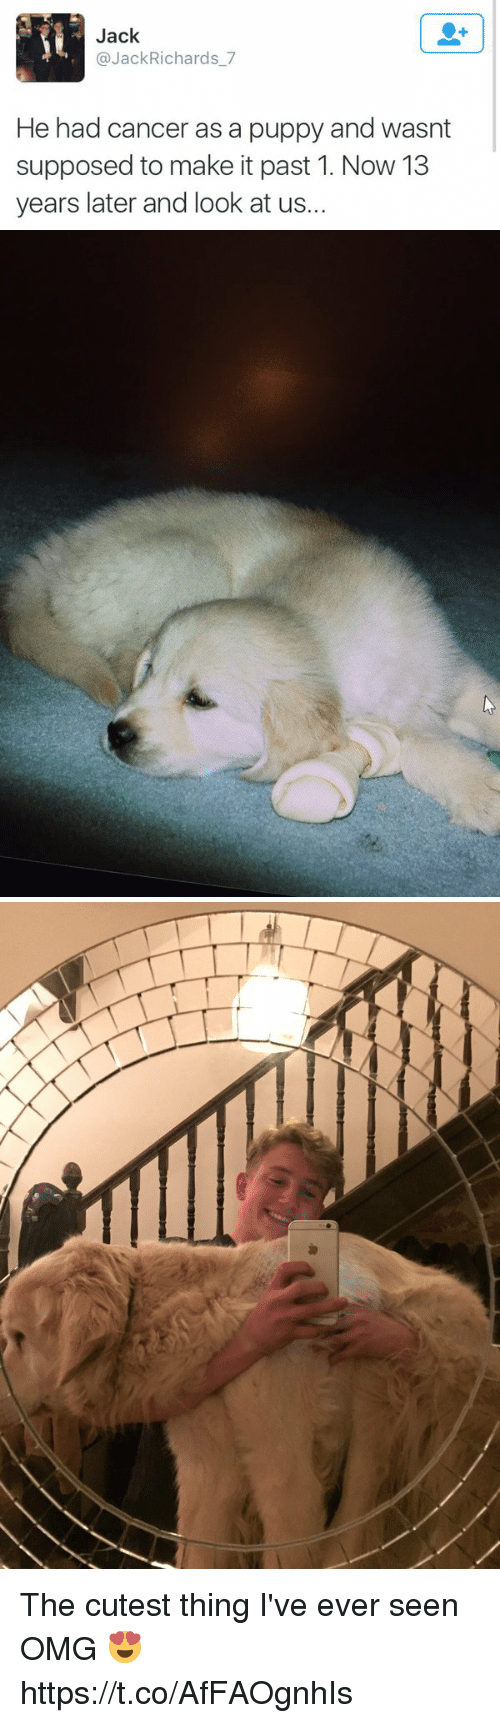 Omg, Cancer, and Puppy: Jack  @JackRichards_7  He had cancer as a puppy and wasnt  supposed to make it past 1. Now 13  years later and look at us. The cutest thing I've ever seen OMG 😍 https://t.co/AfFAOgnhIs